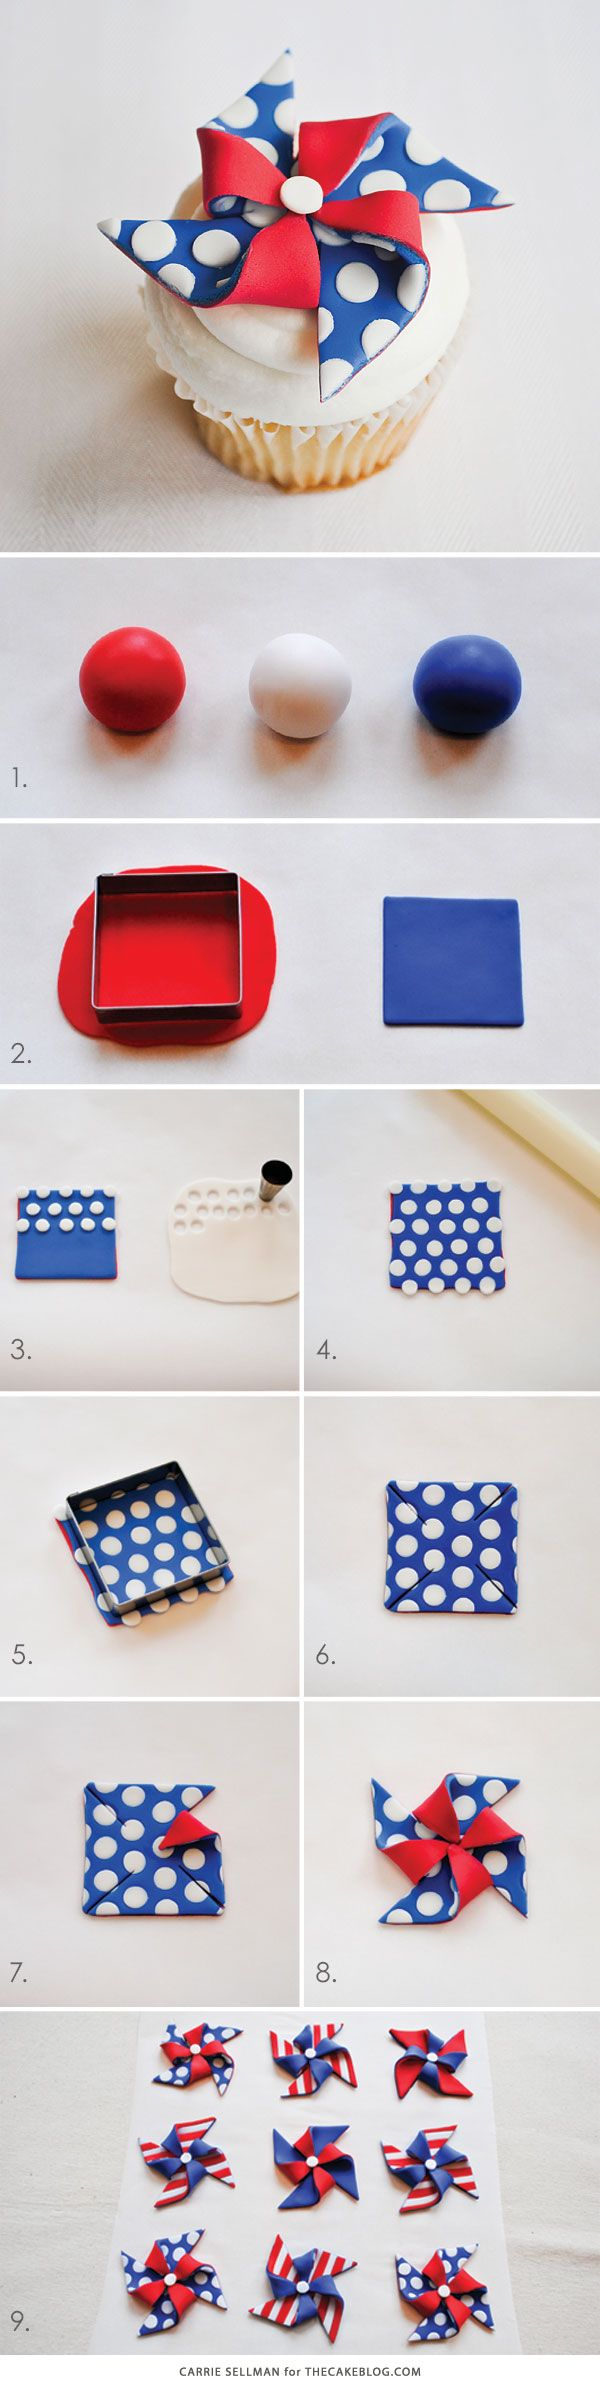 DIY Patriotic Pinwheel Cupcakes in Red, White & Blue |by Carrie Sellman for TheCakeBlog.com